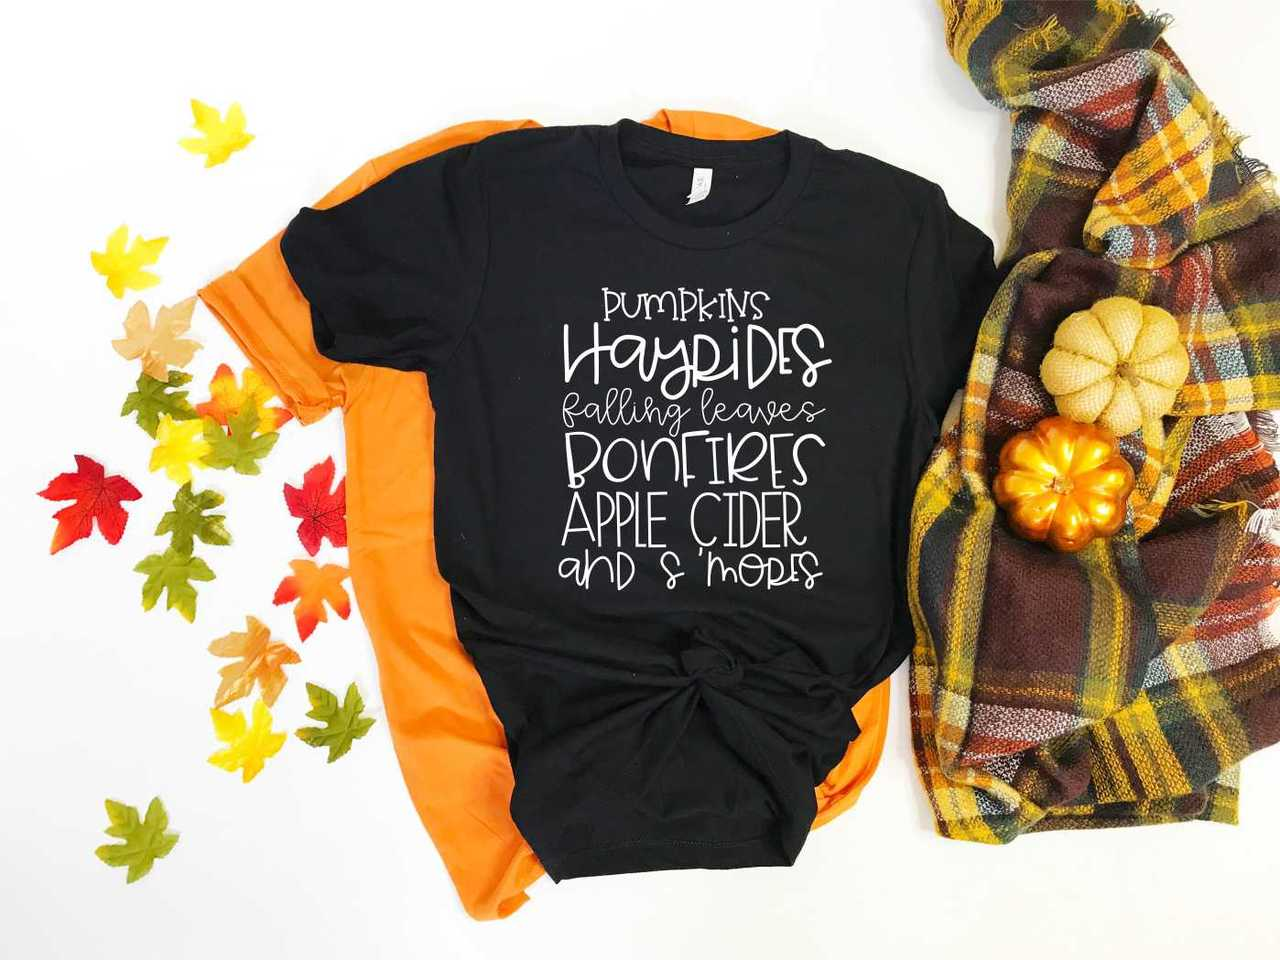 Pumpkins Hayrides Falling Leaves Bonfires Apple Cider and S'more Softstyle Tee